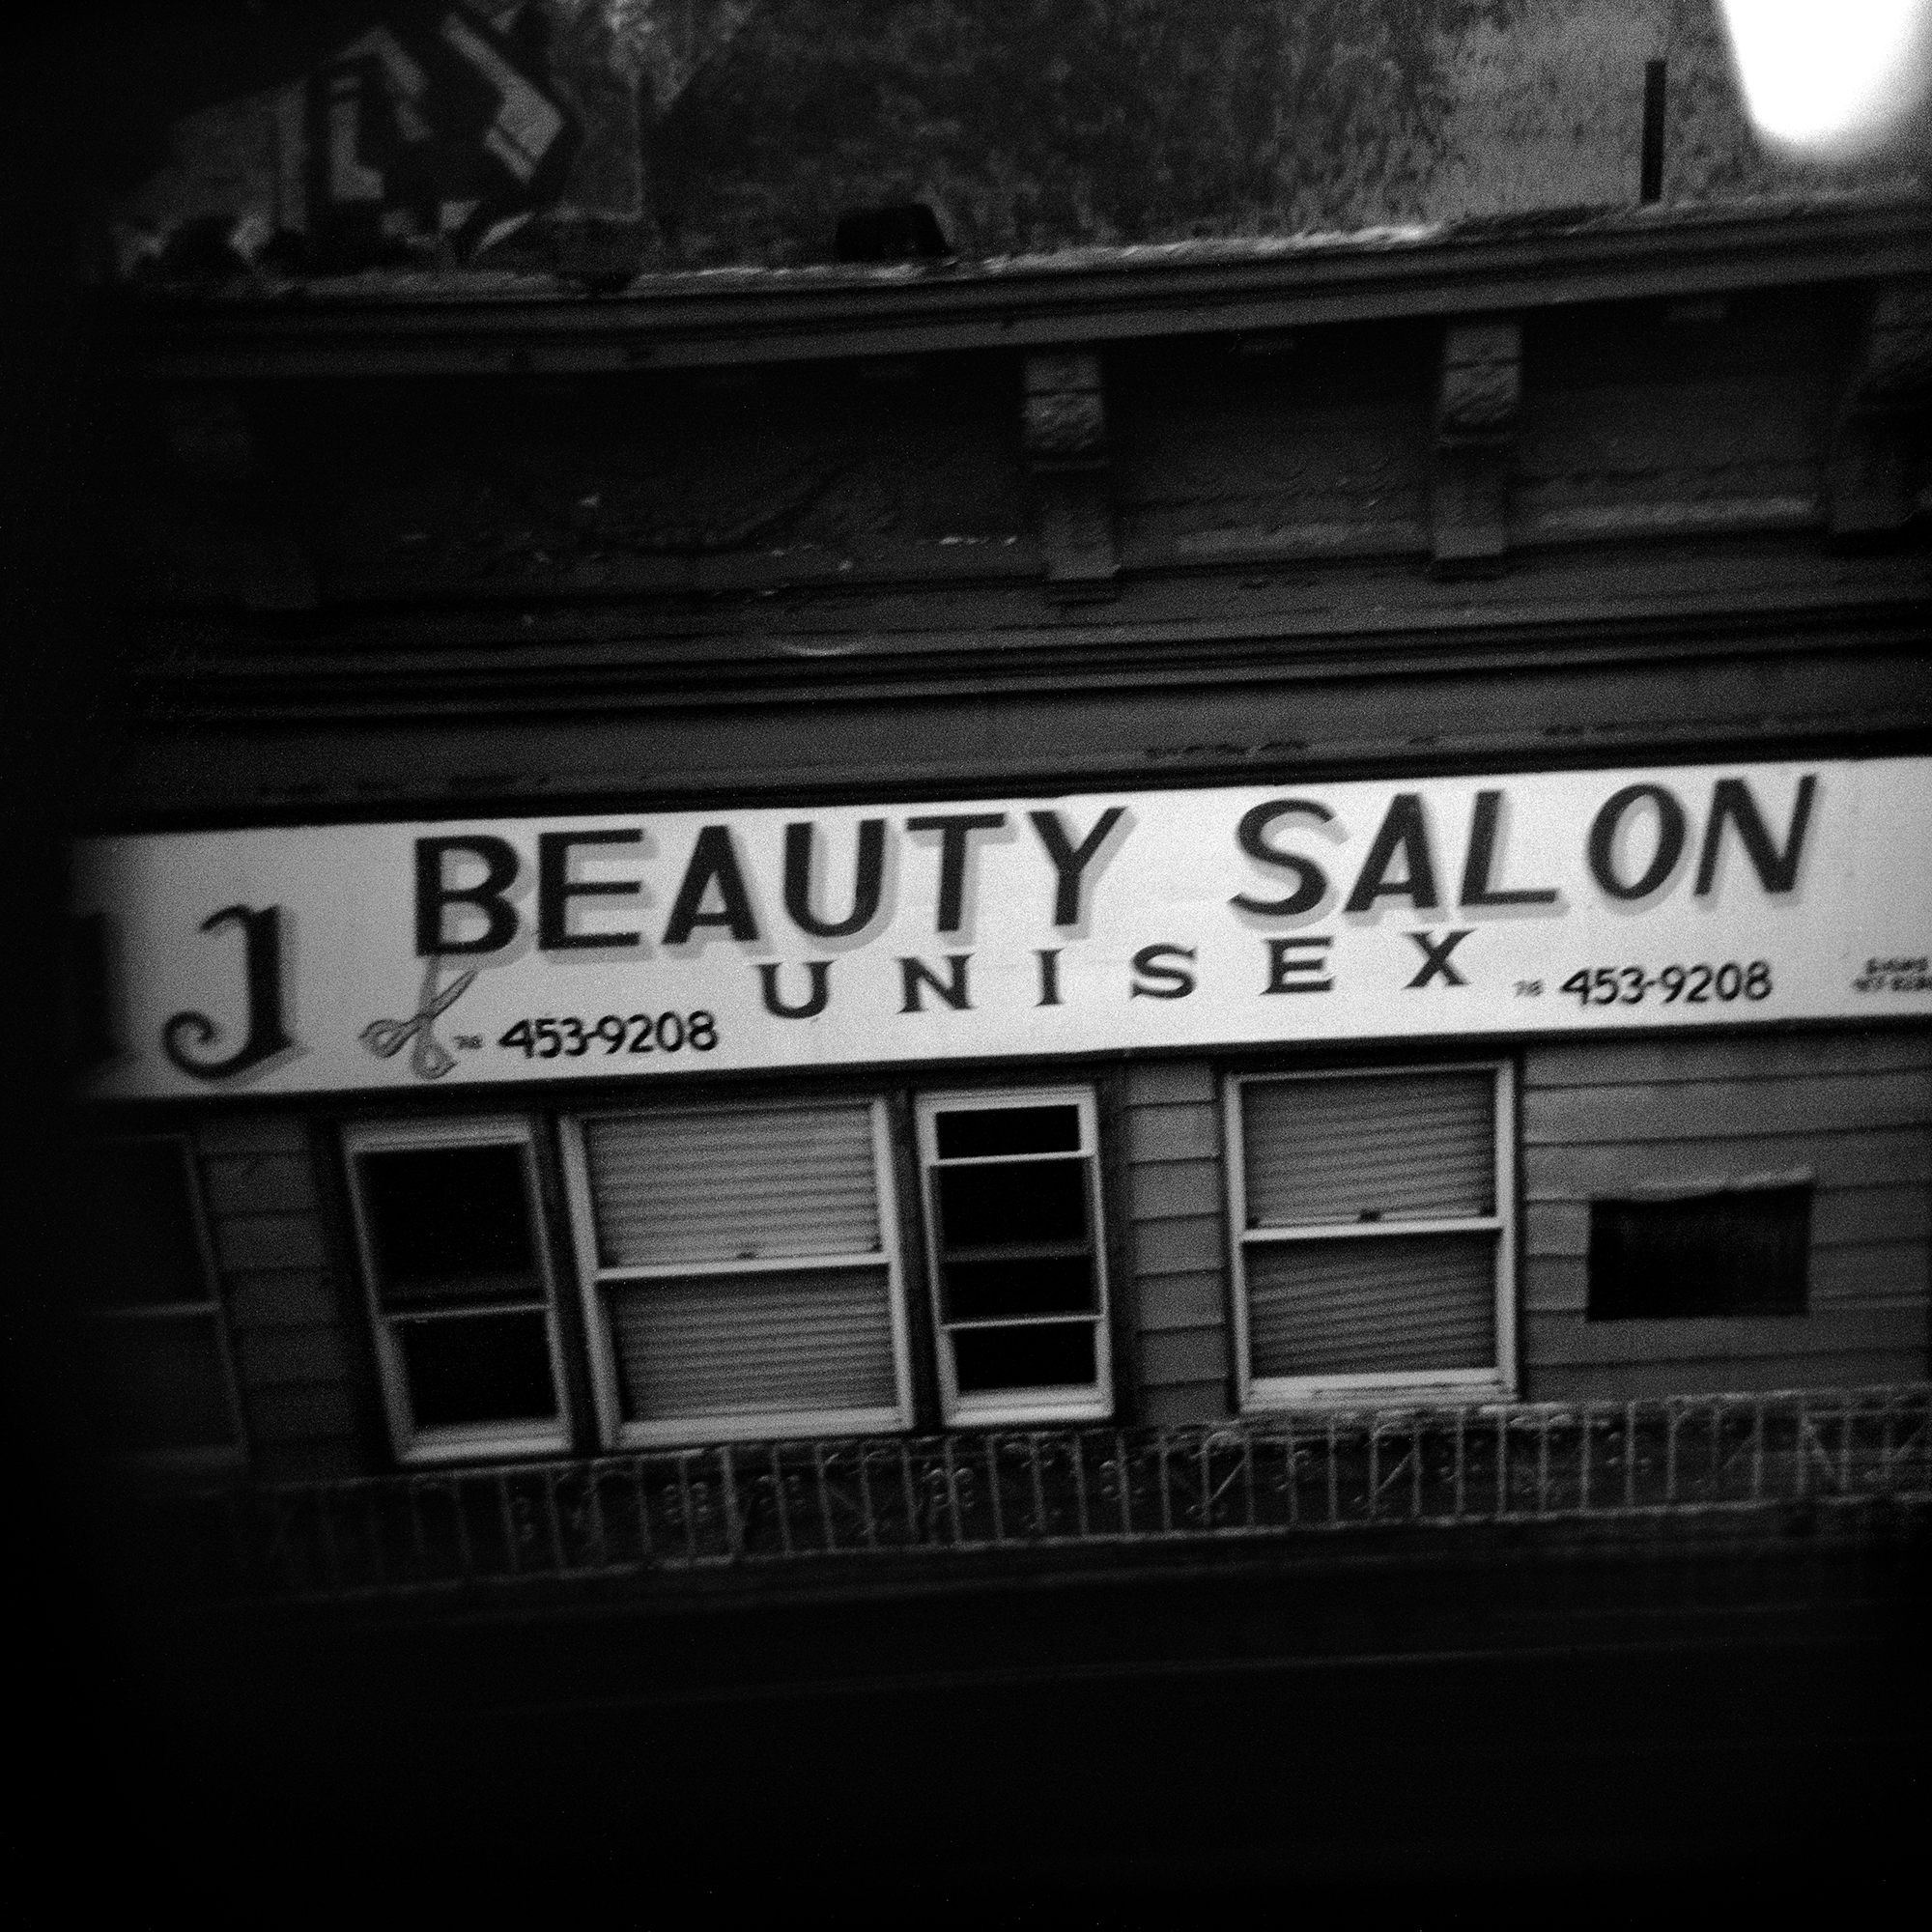 beauty salon.jpg